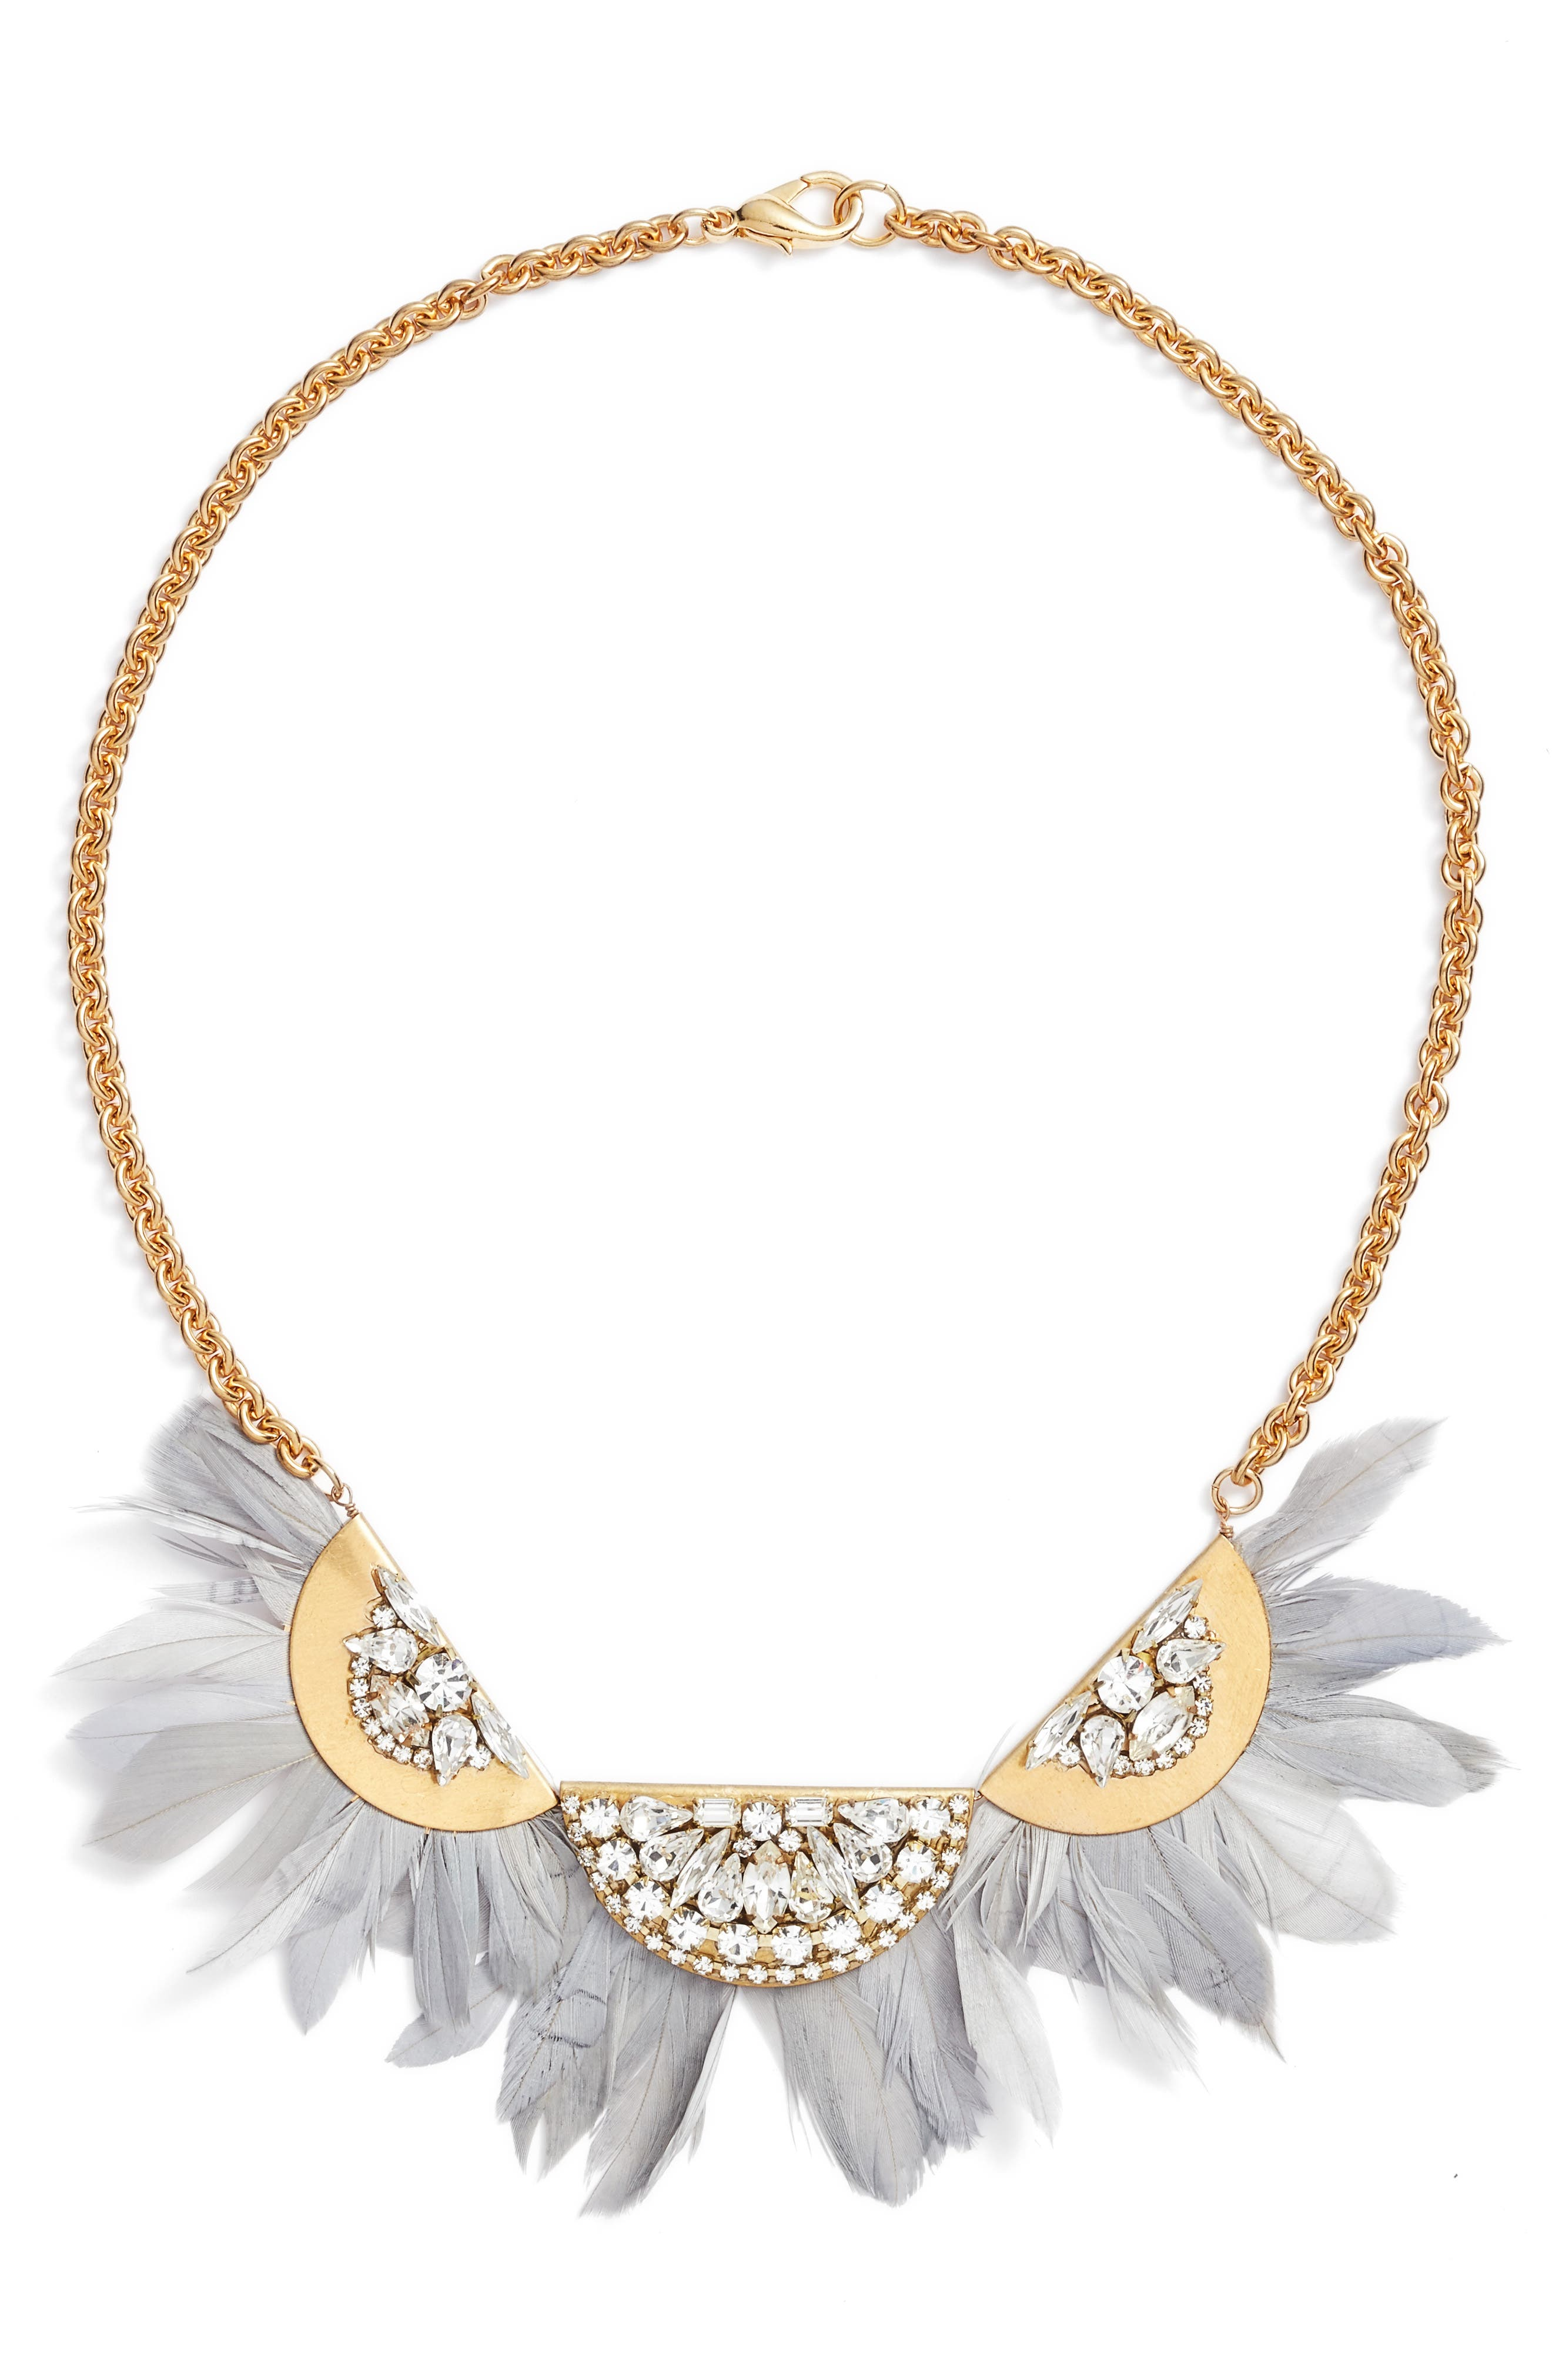 Main Image - Sandy Hyun Feather Bib Necklace